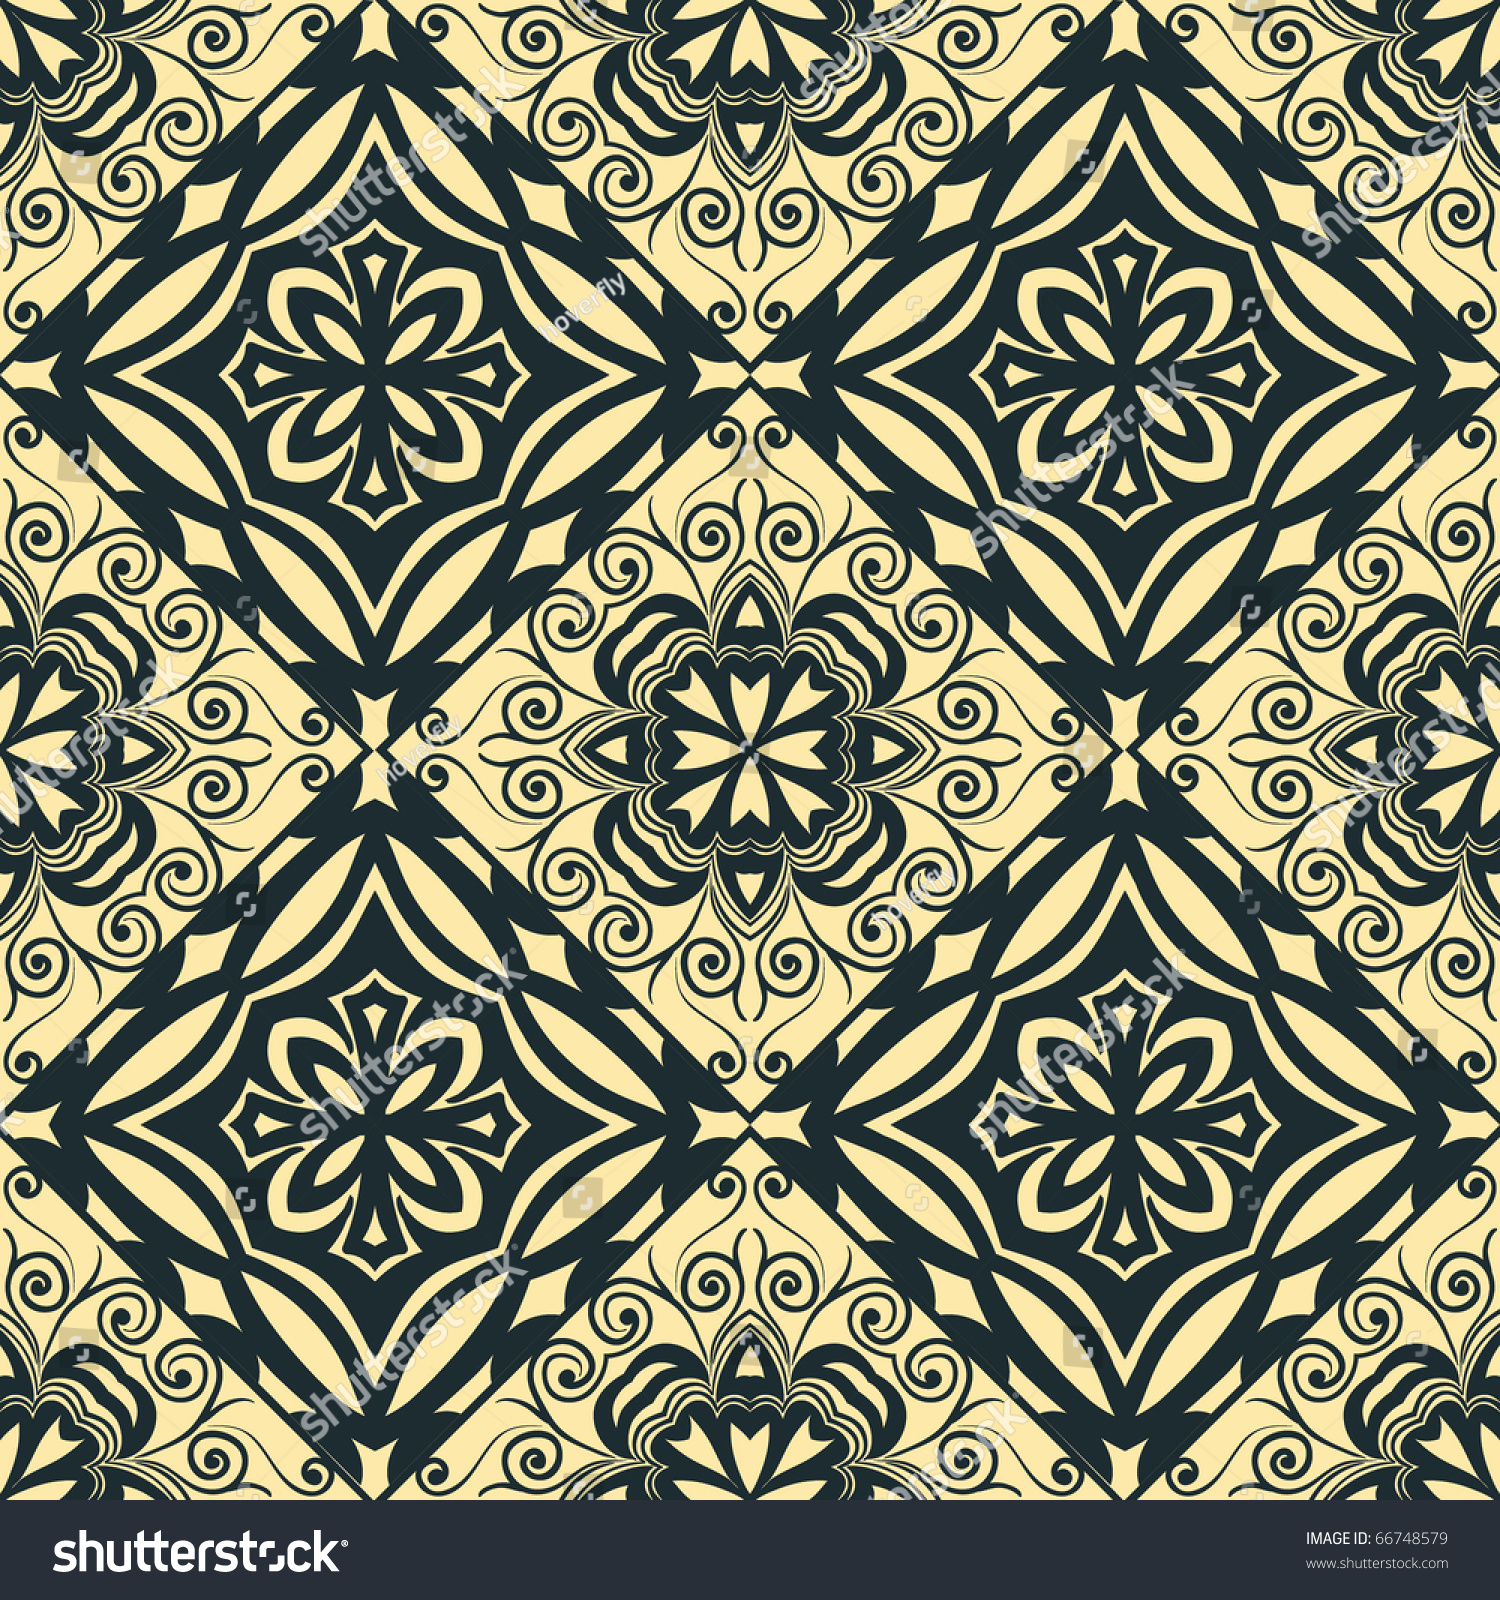 vintage repeating wallpaper - photo #14